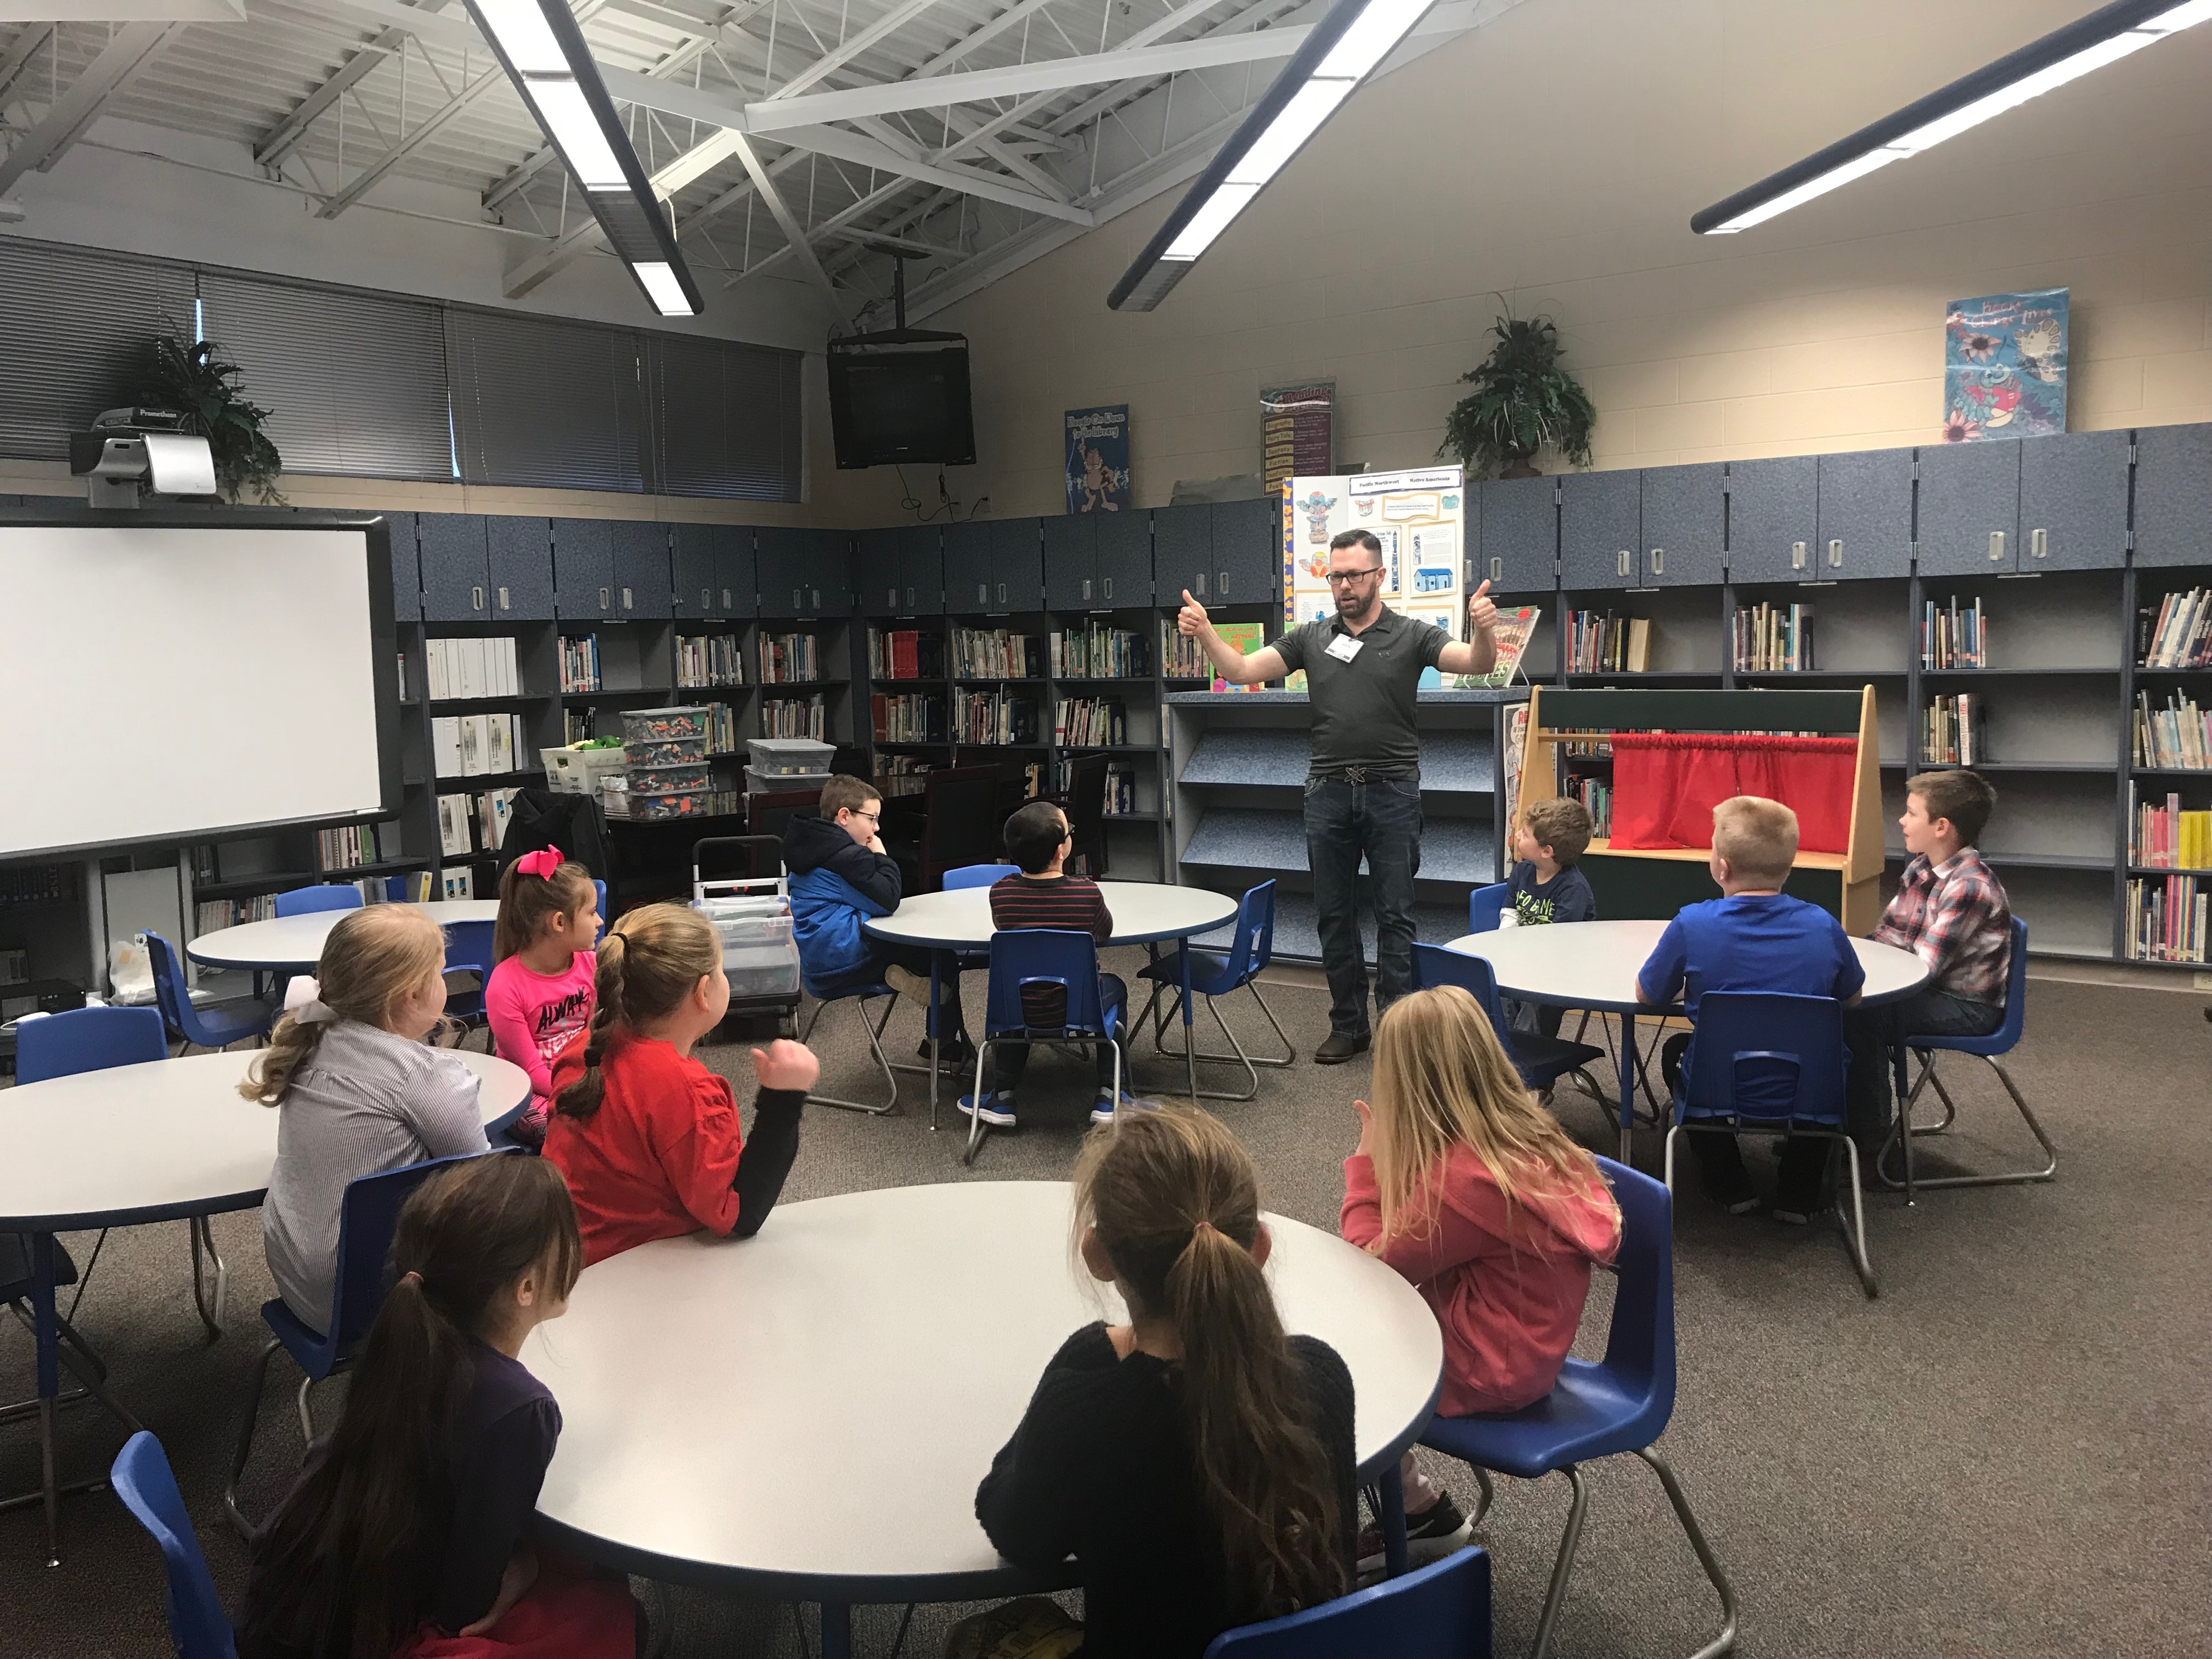 On Wednesday, January 23rd, students in the Gifted & Talented program at Albany Elementary School enjoyed a visit with Mr. Science!